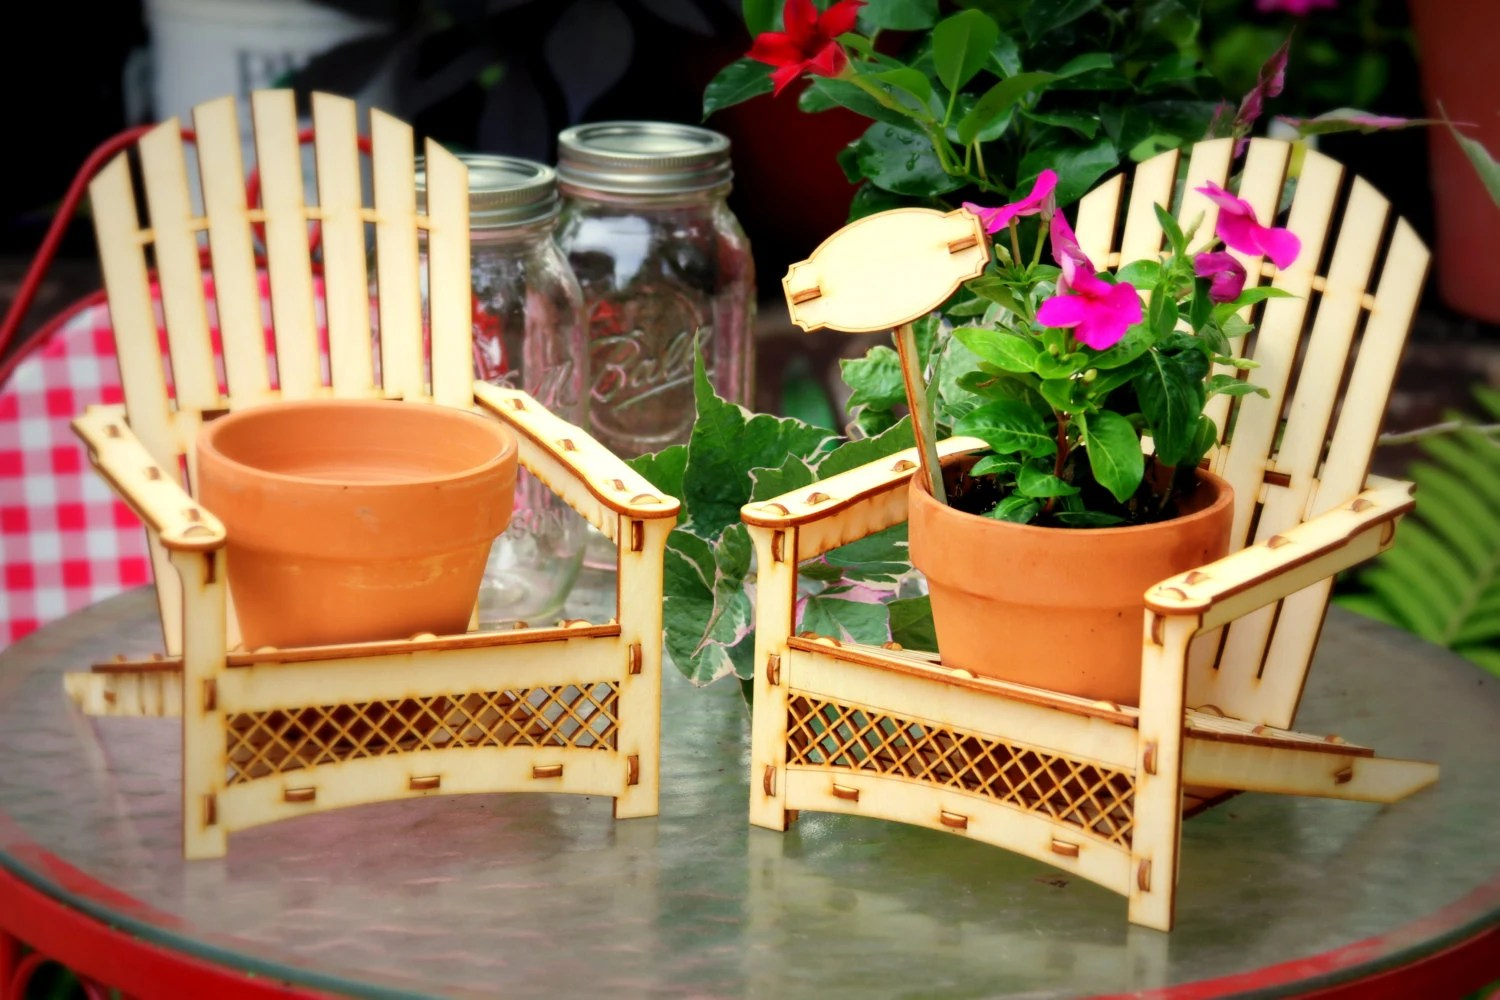 diy adirondack chair kit dining room high back covers uk chair. outdoor planter drink holder beach buddy